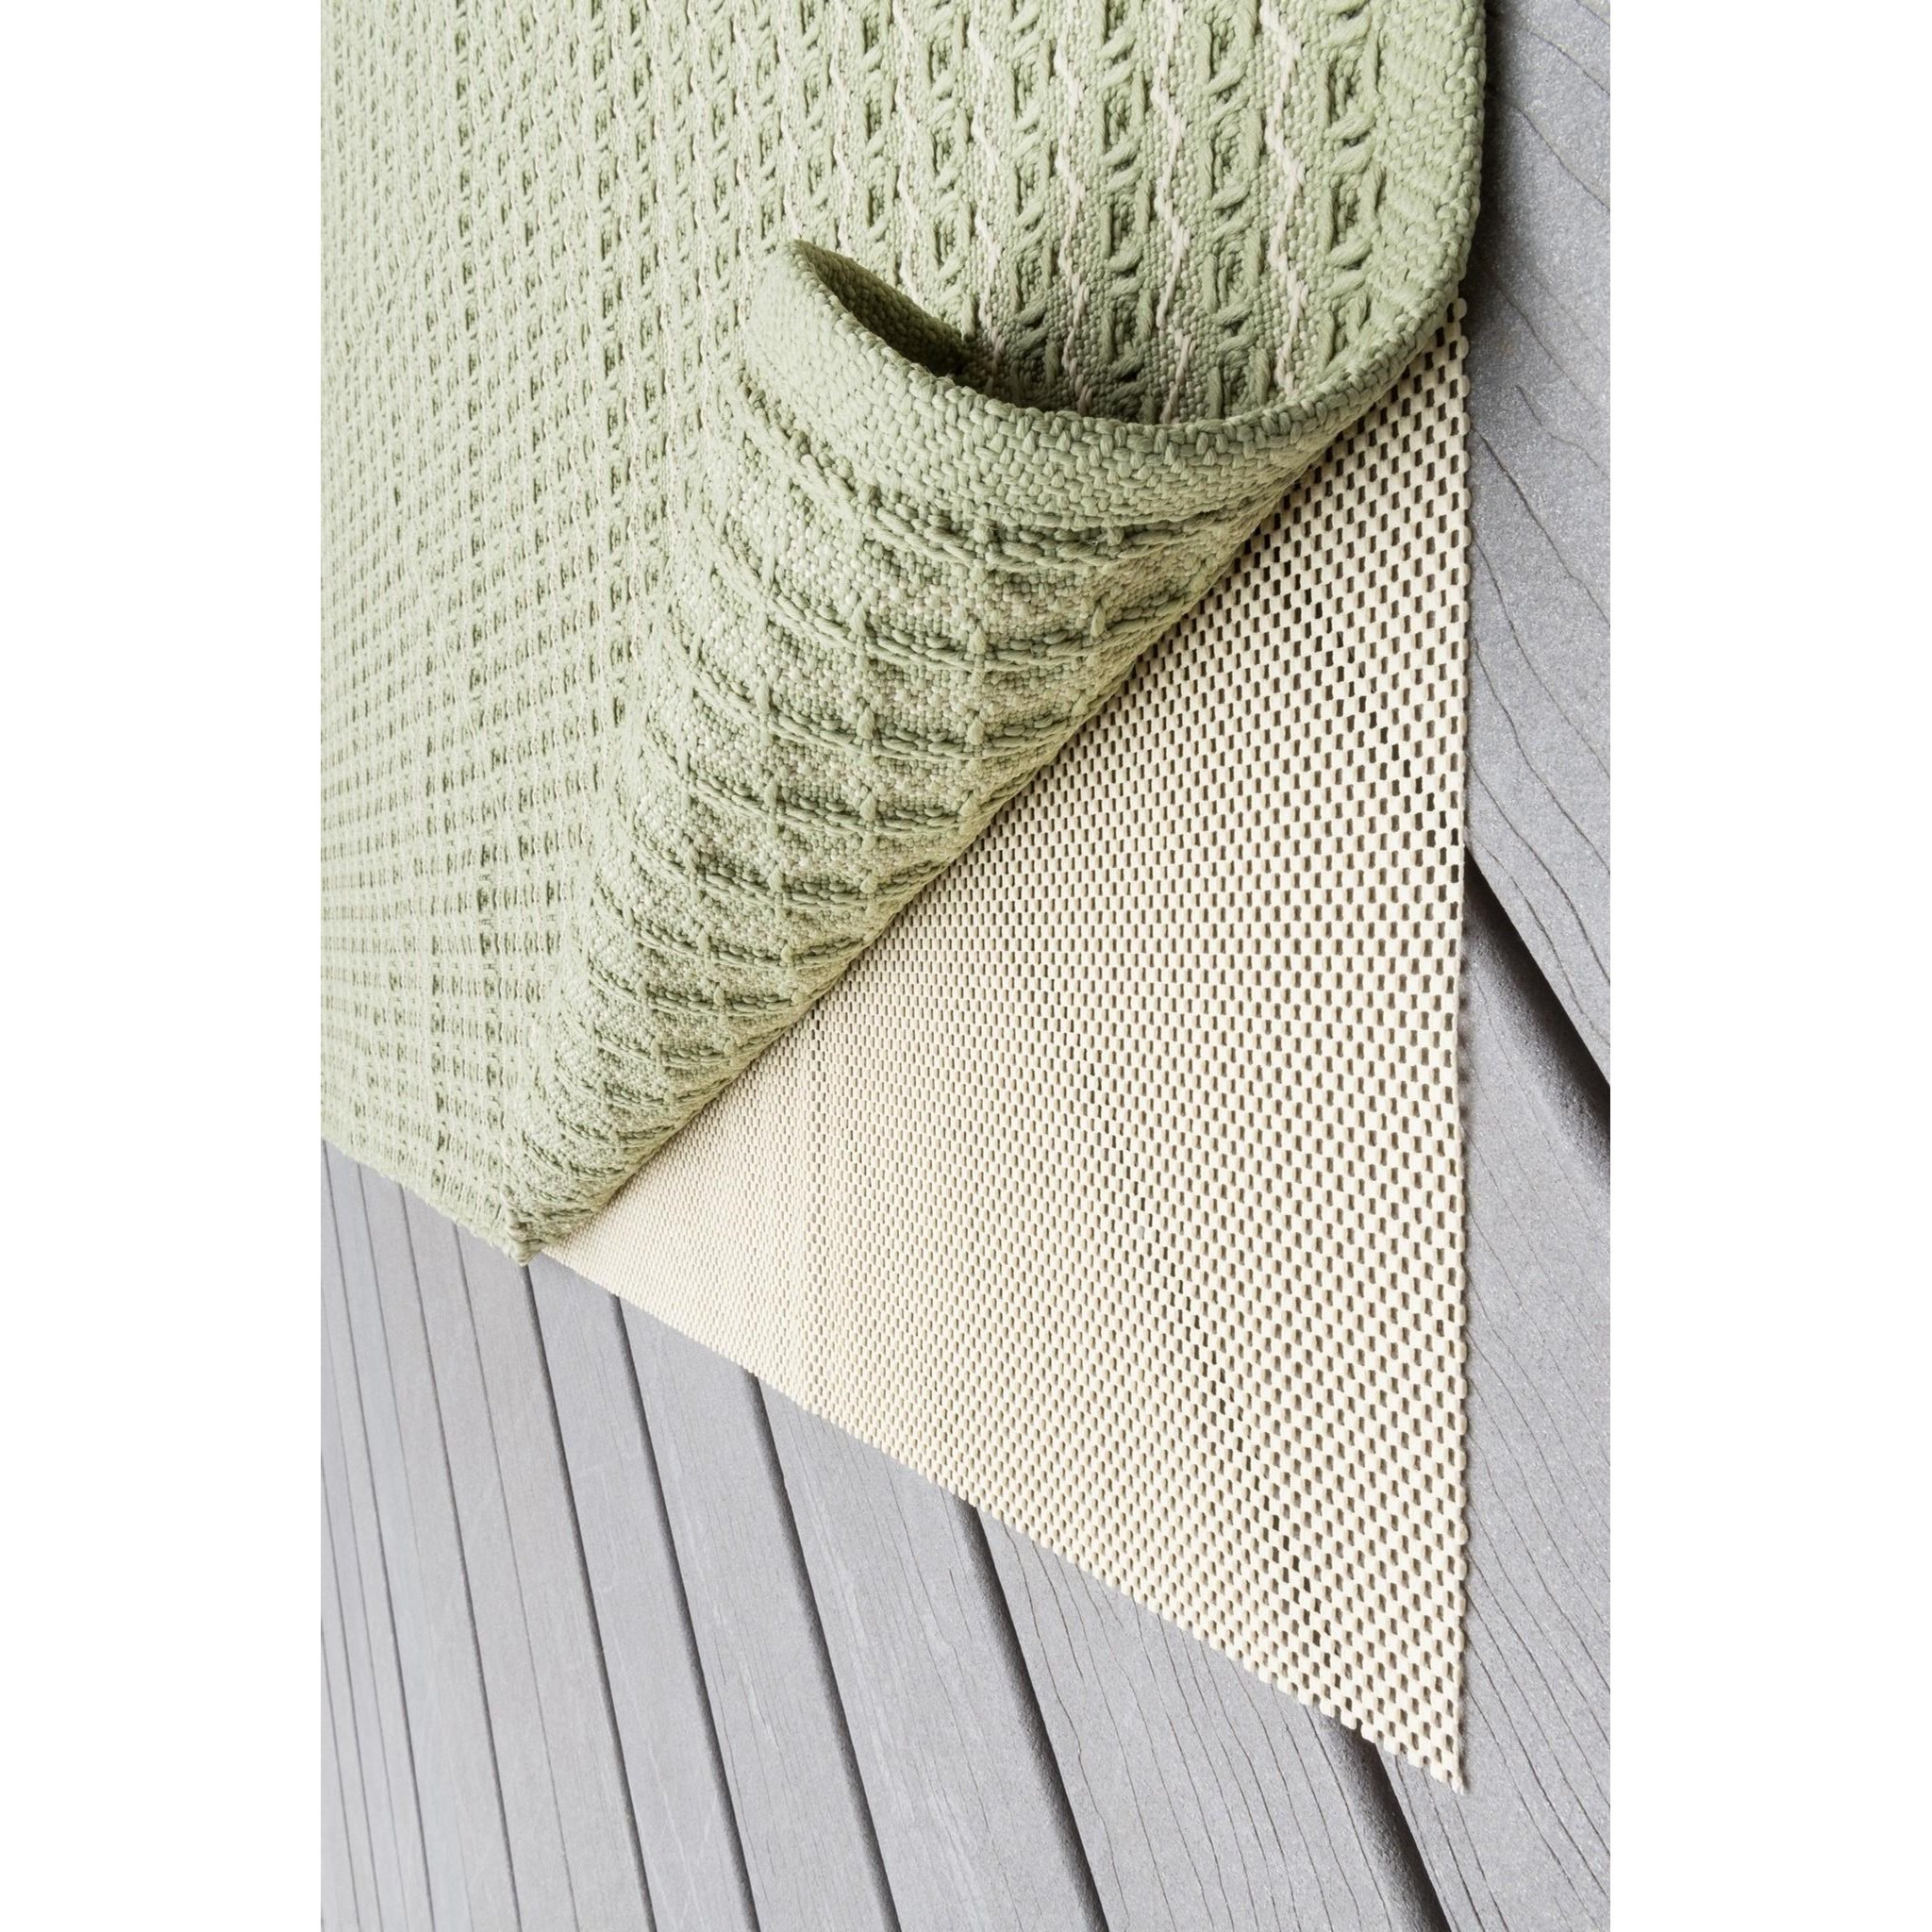 """Outdoor Grip Rug Pad 5'-0"""" X 8'-0"""" Rug by Loloi Rugs at Sprintz Furniture"""